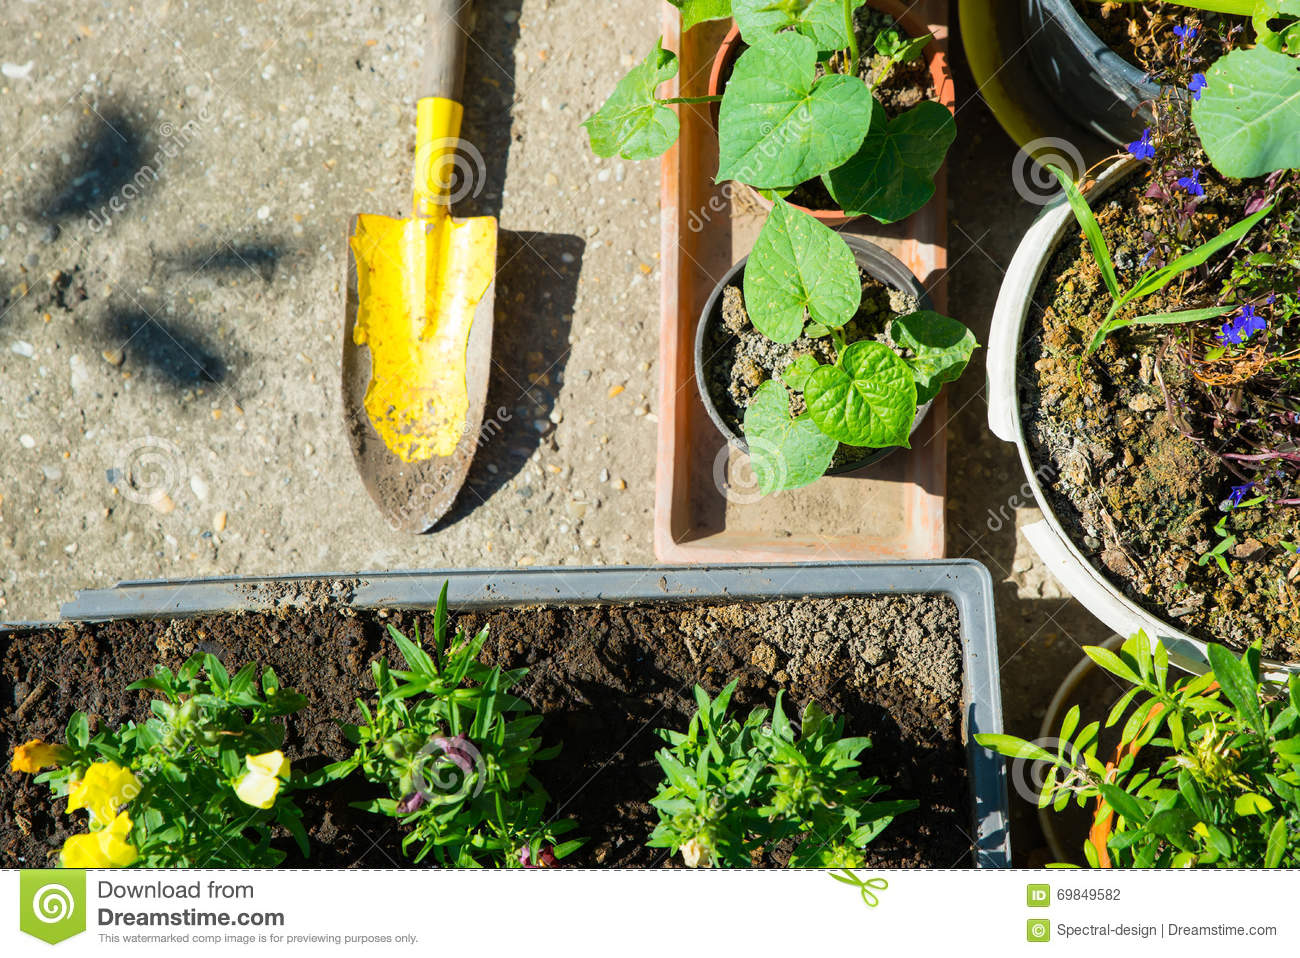 Planting in the garden stock photo image 69849582 for Gardening tools used in planting crossword clue